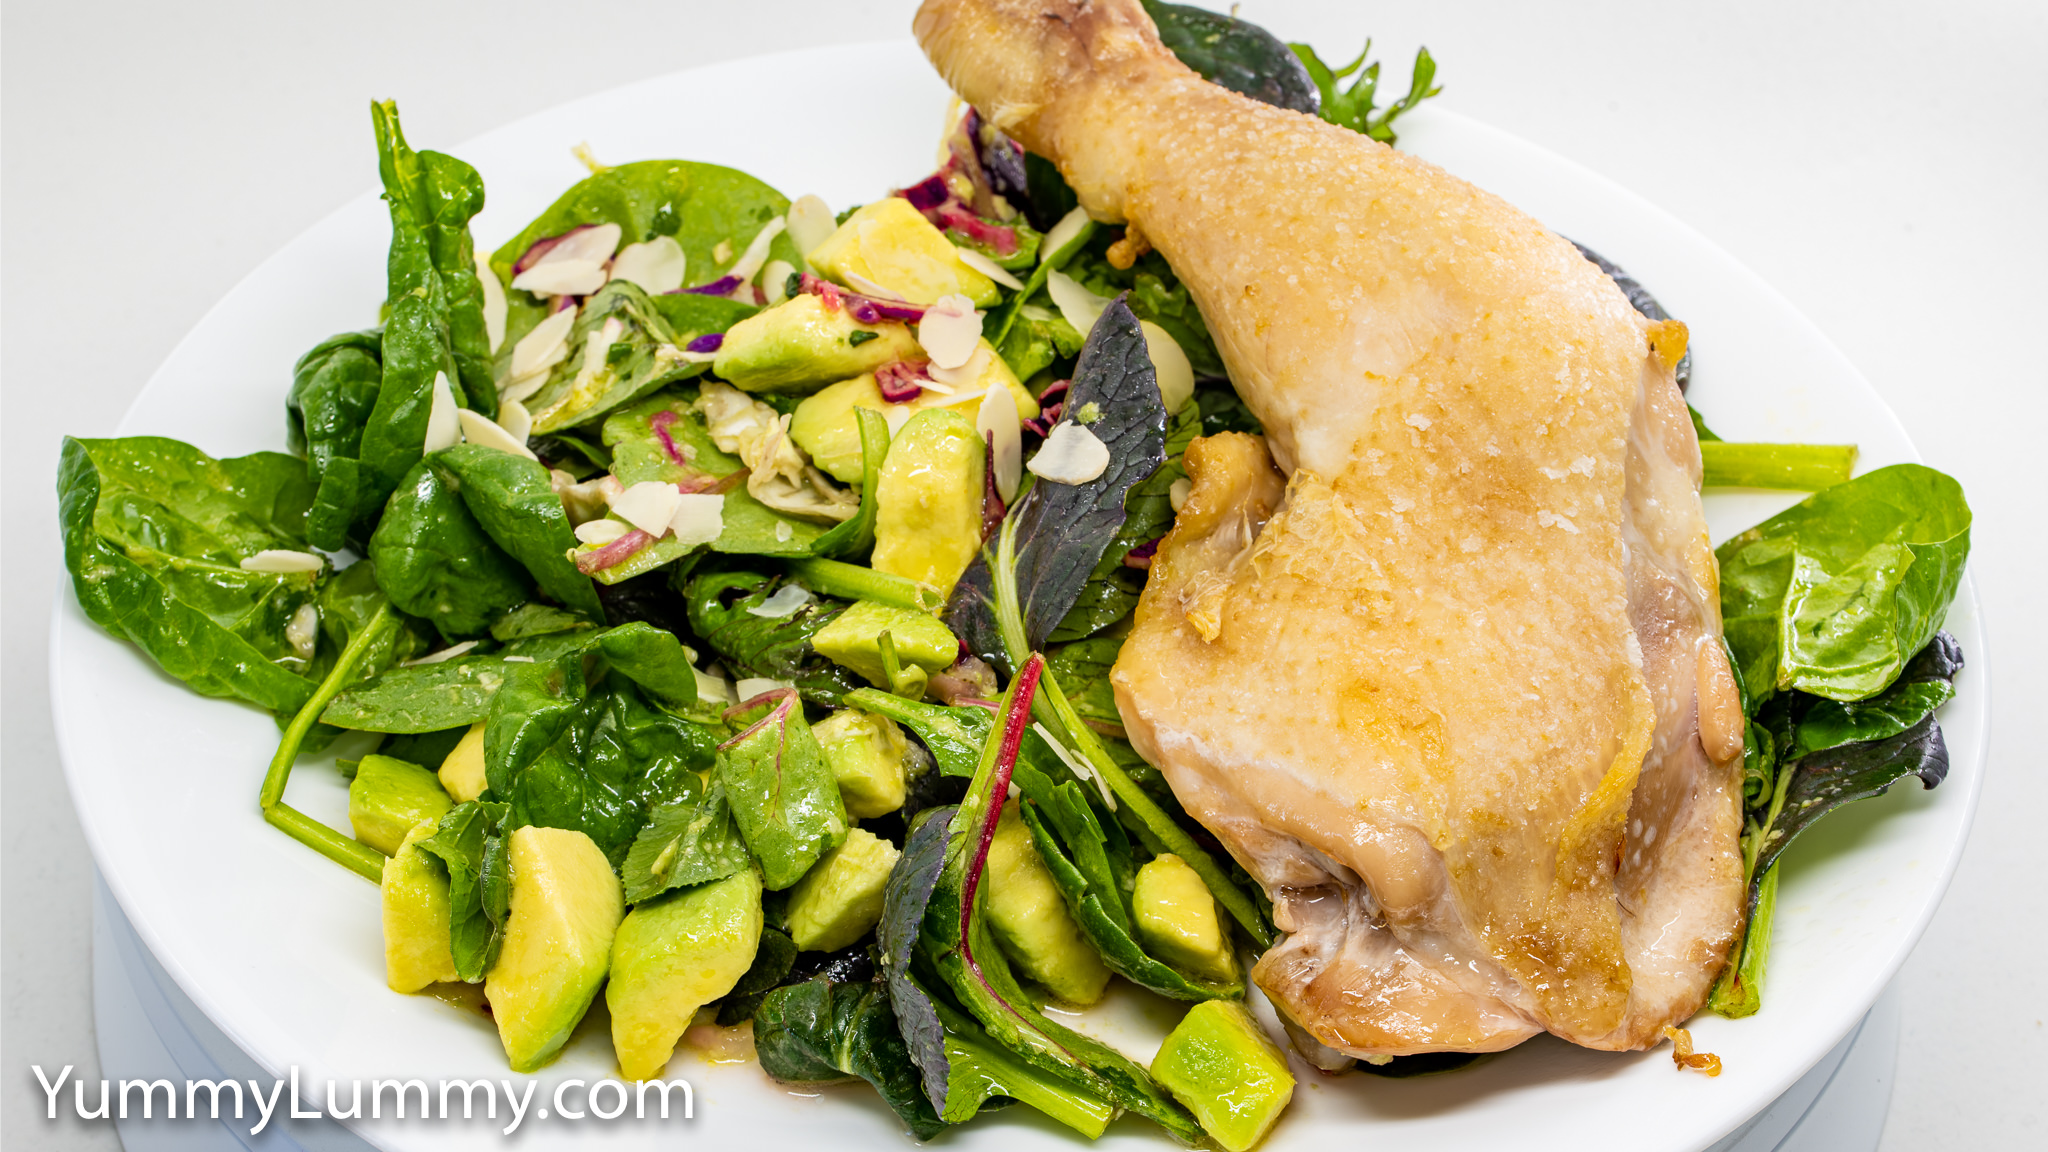 Photograph of Roast chicken and avocado salad. Gary Lum